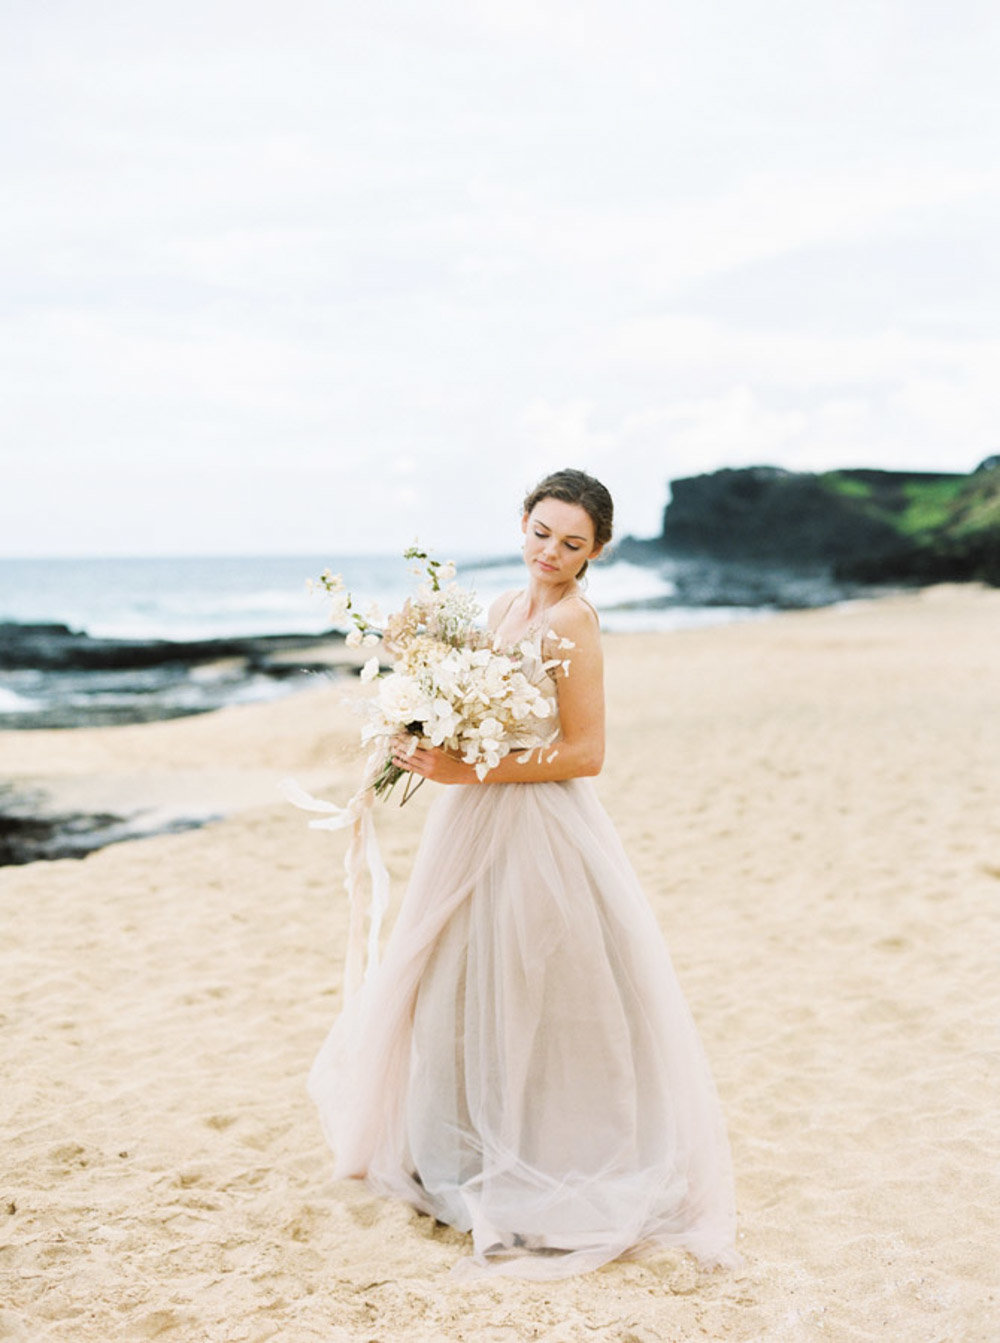 Hawaii Destination Wedding Photographer Sheri McMahon - Hawaii Beach Elopement-00006